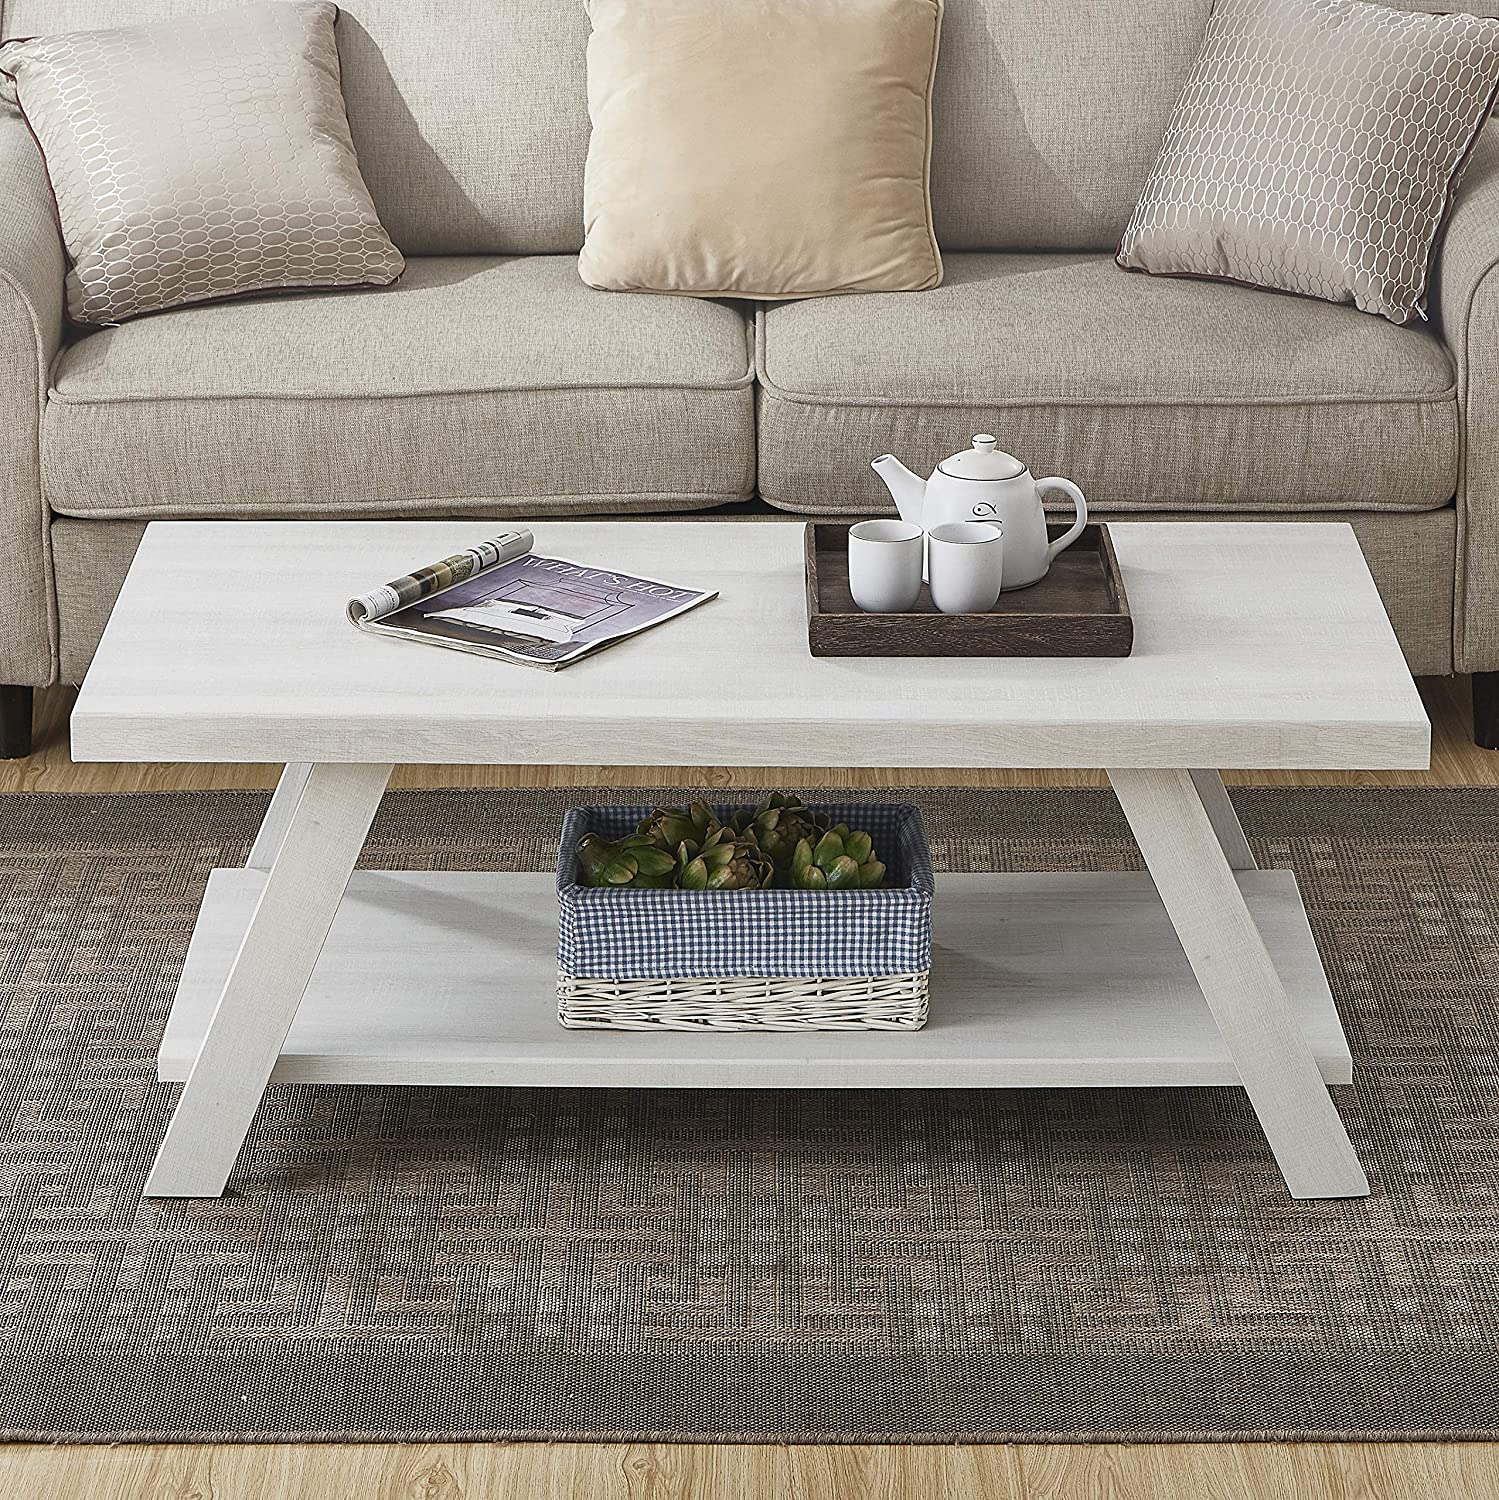 Roundhill Furniture Athens Contemporary Wood Shelf Coffee Table, White